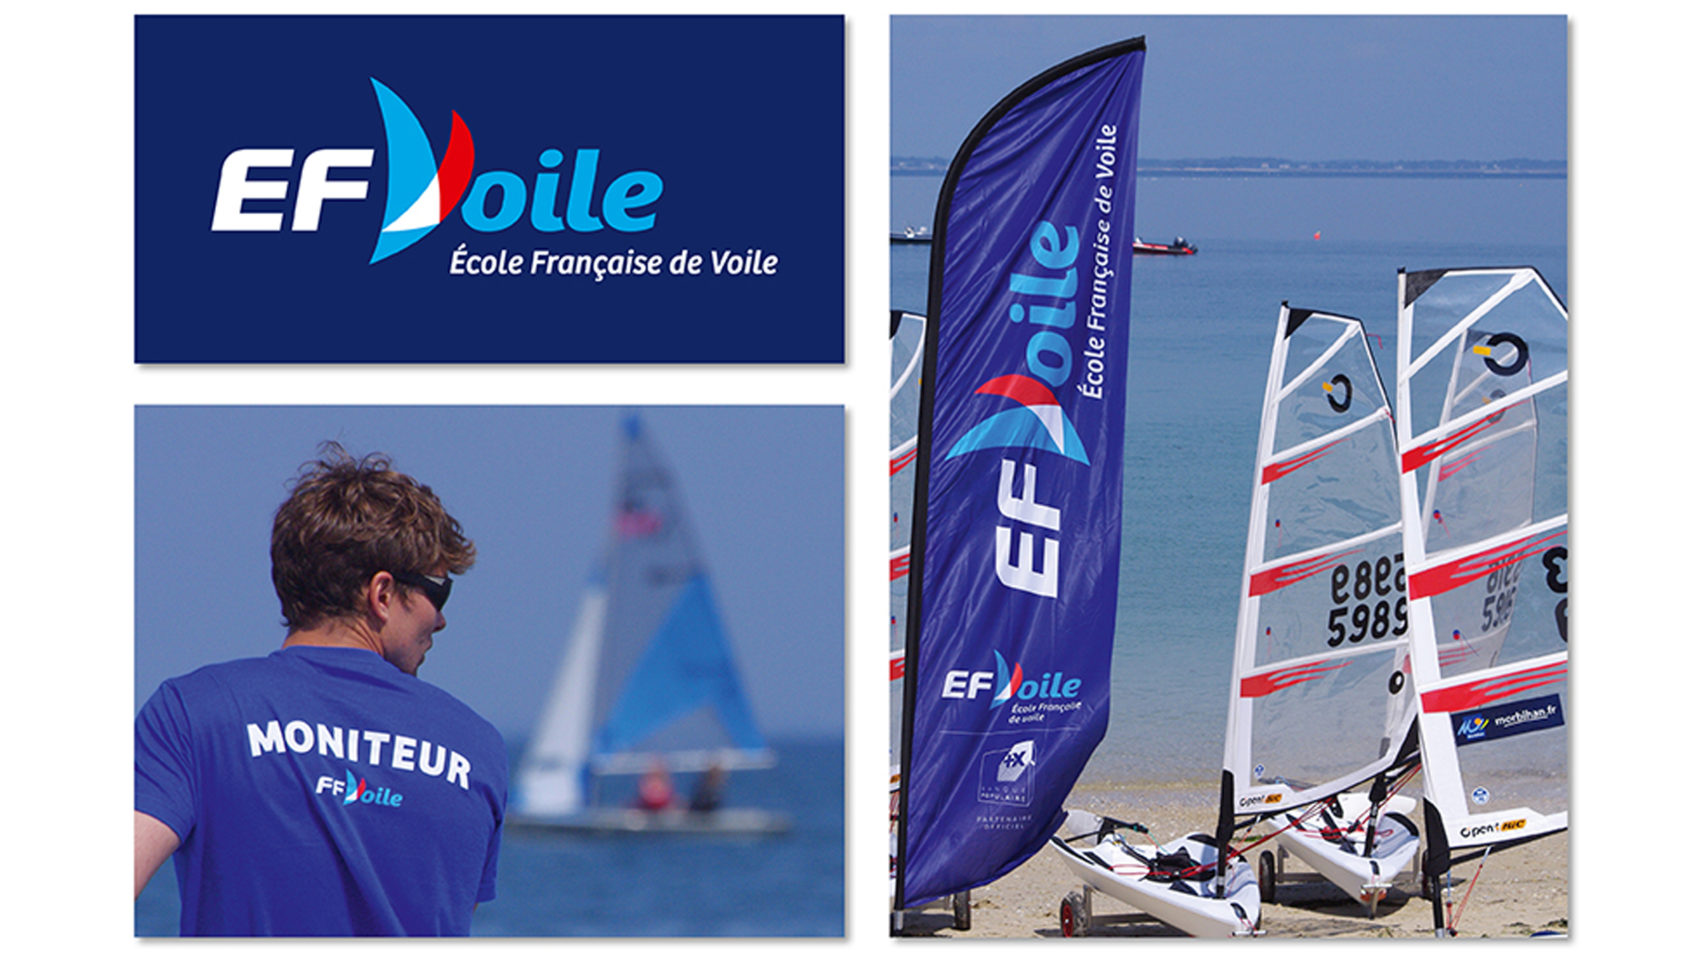 projet_project_realisation_07_Federation_Francaise_french_Voile